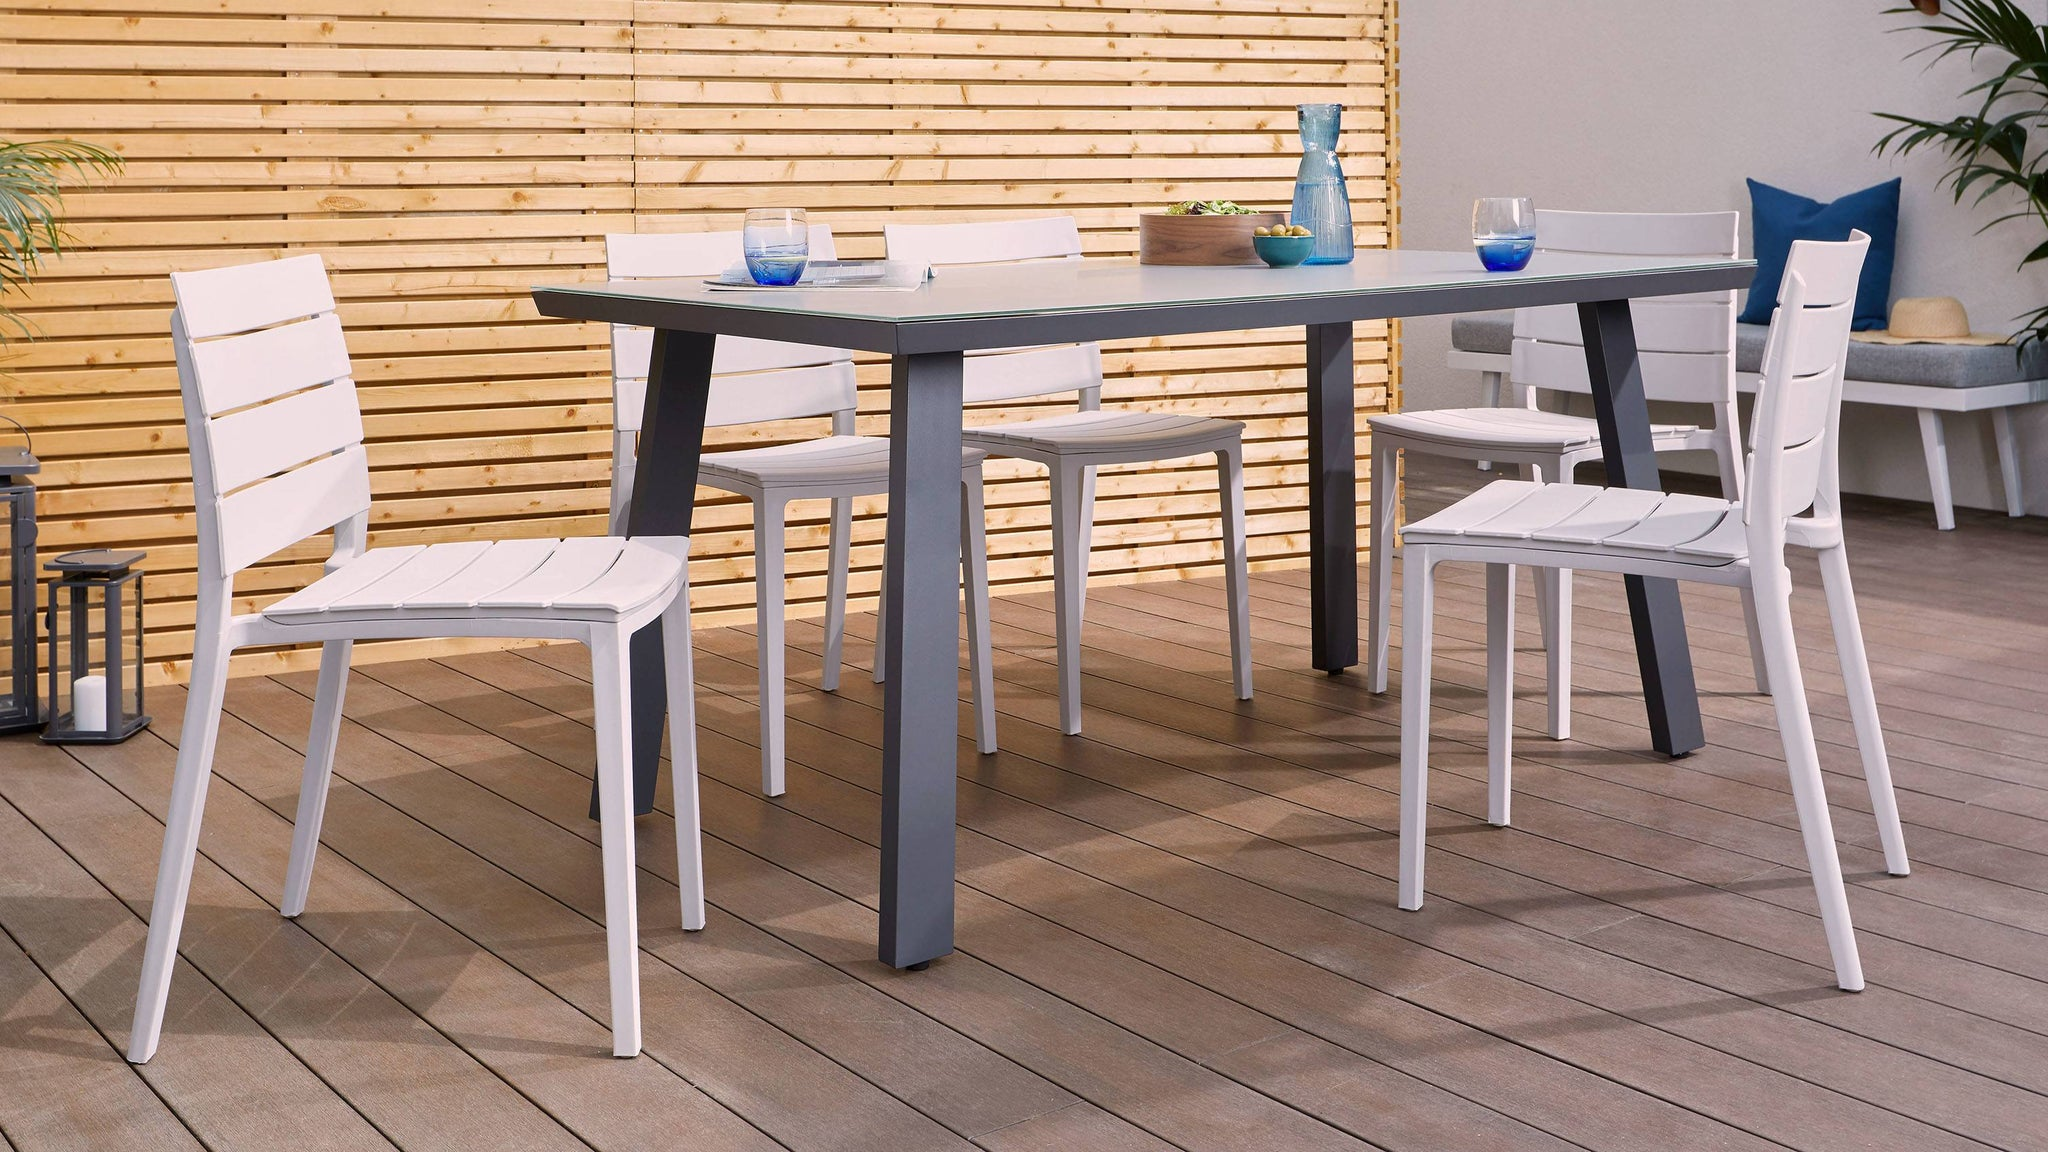 6-8 seater garden table set